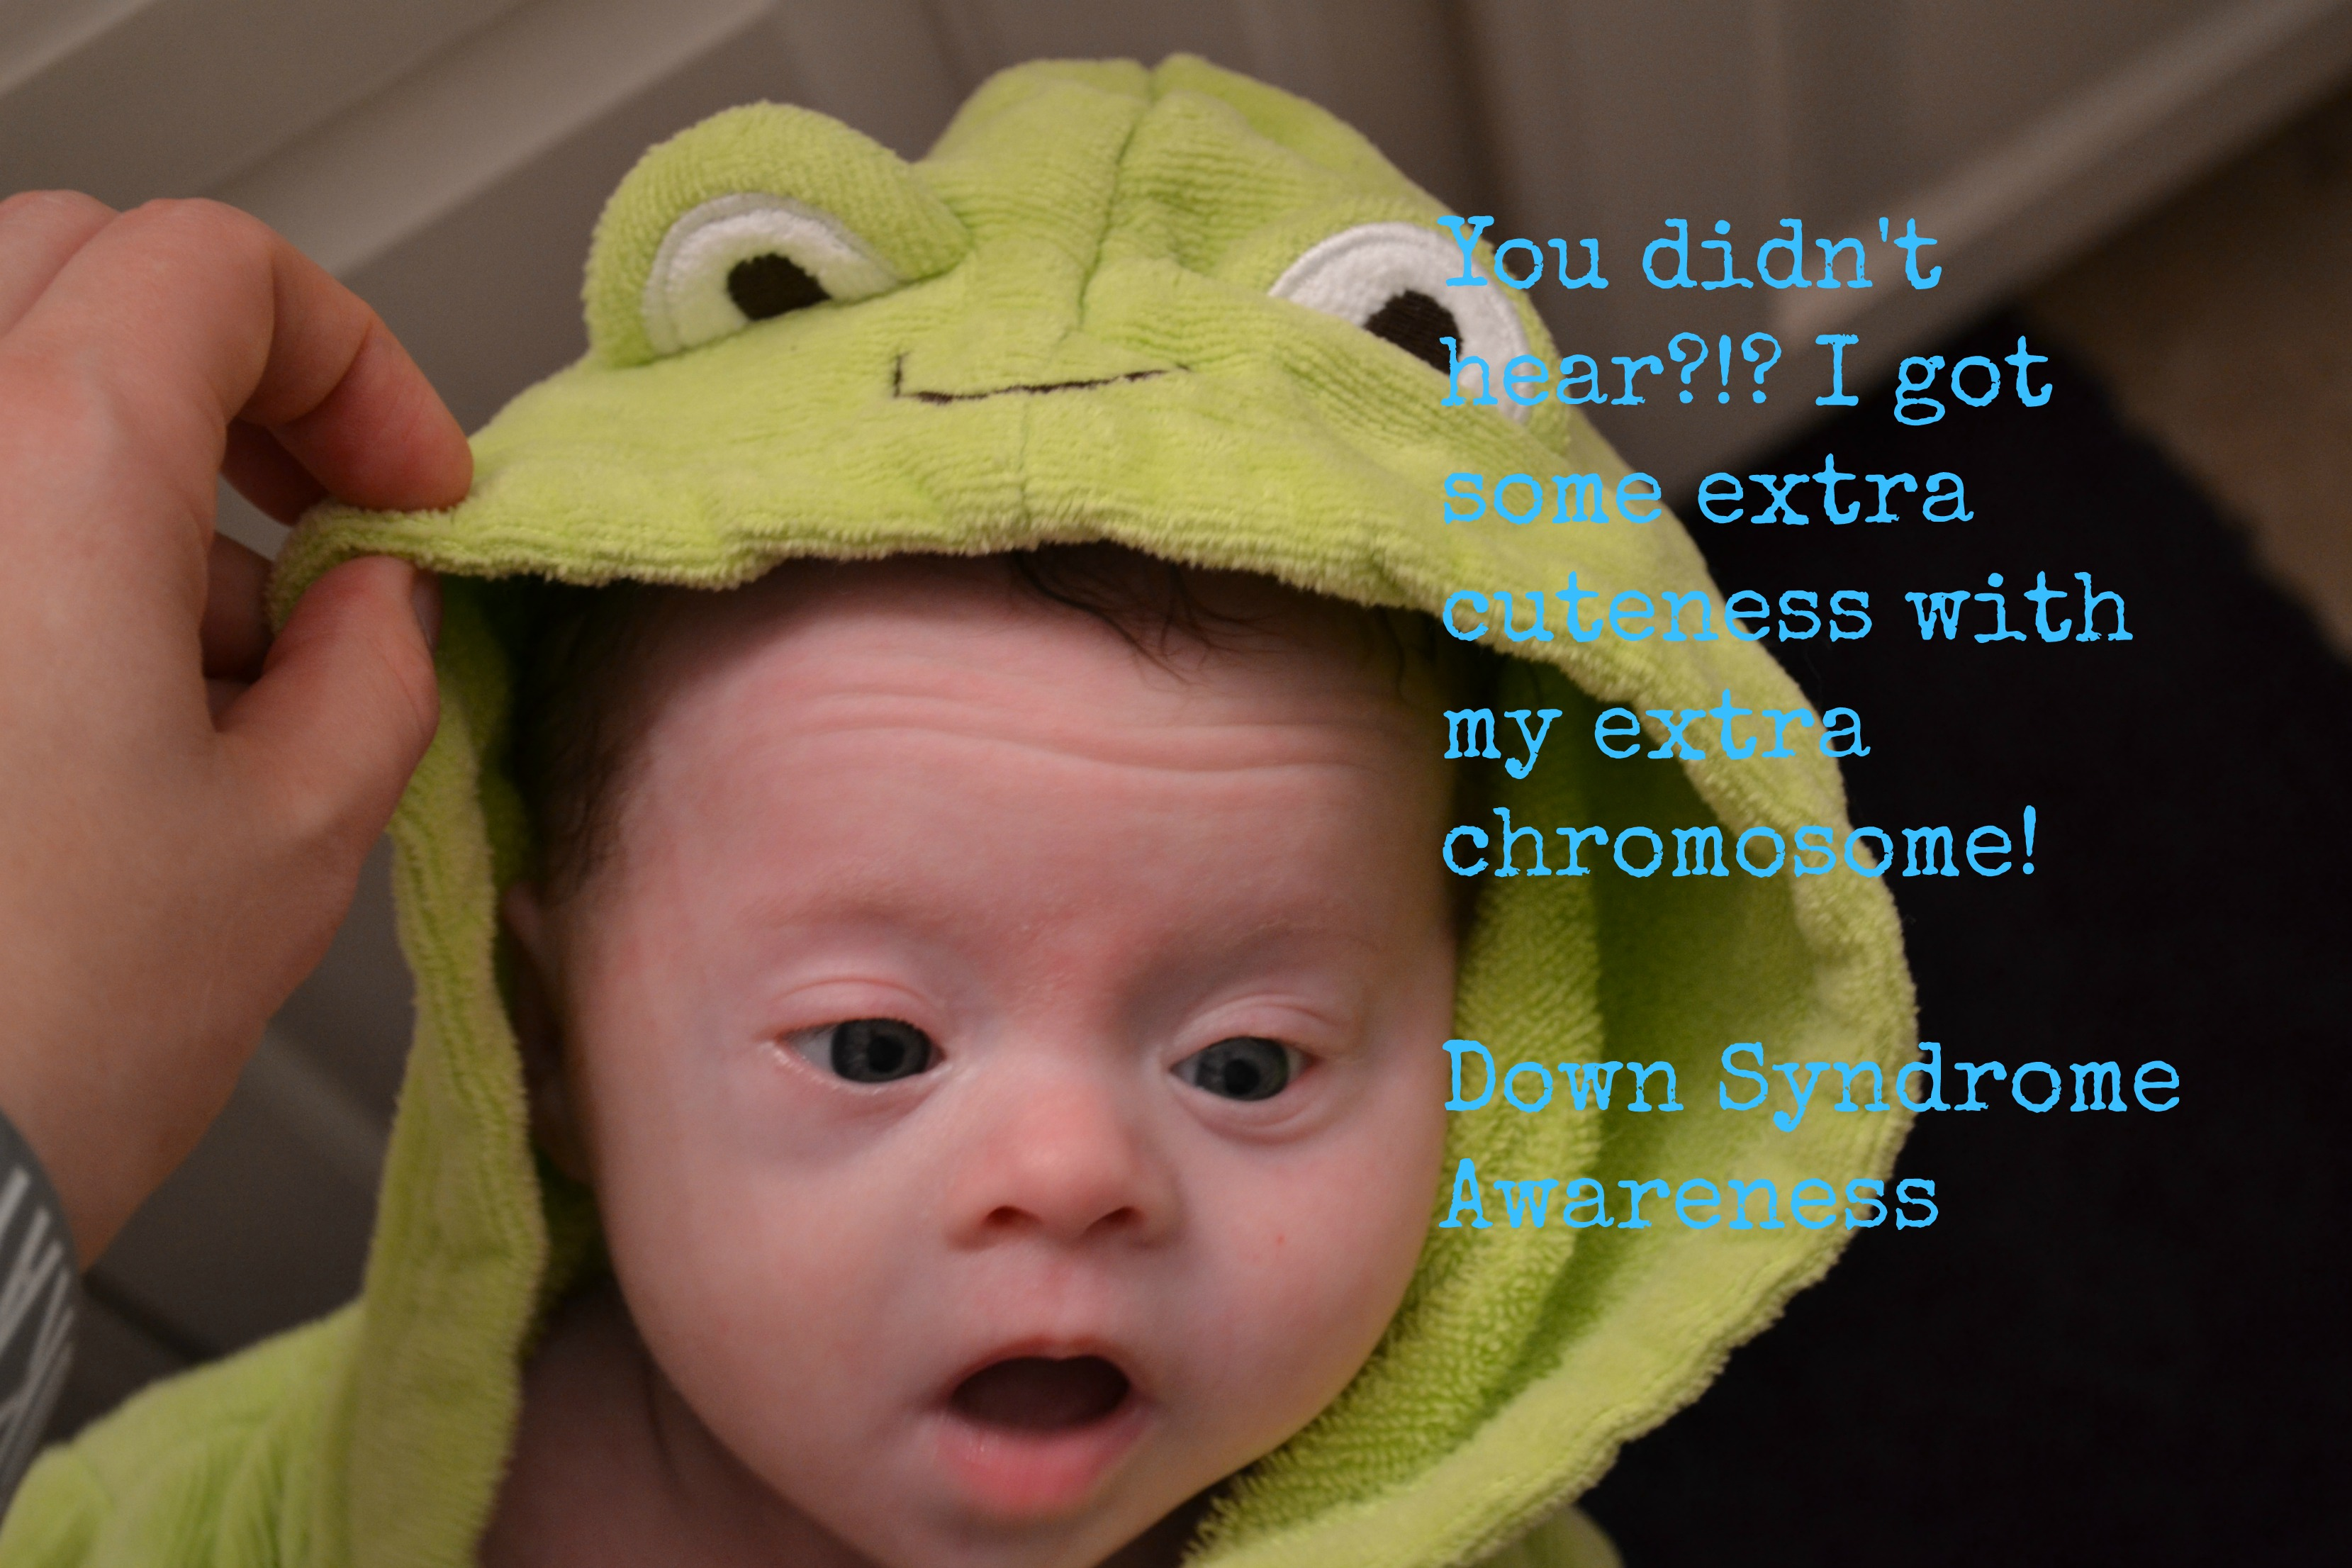 Down Syndrome Awareness Images Feel Free To Share Them